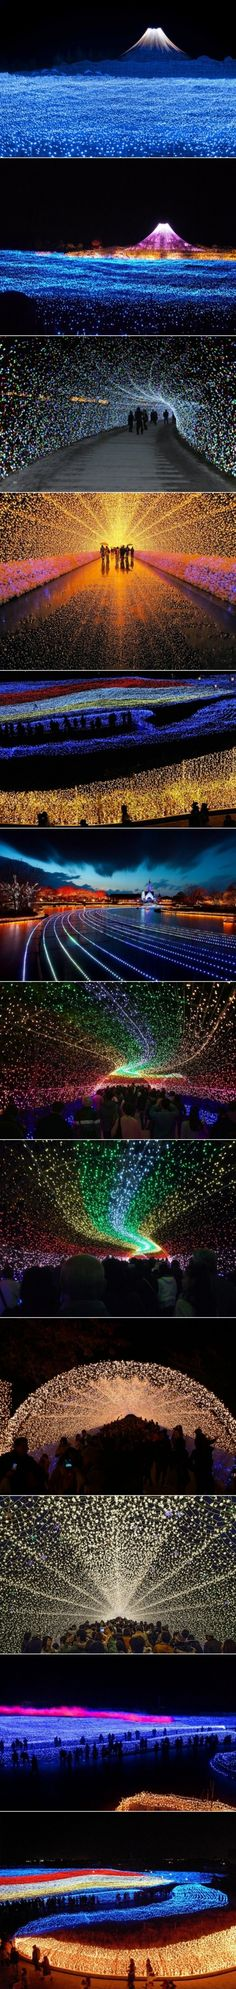 Japan's Winter Lights Festival,  Kuwana City, Mie Prefecture. 'Nabano No Sato' is a flower-focused park featuring sprawling gardens and giant greenhouses. Annually from mid November to mid March it features one of Japan's finest Winter Illuminations, including the famous tunnel of light. Photos by various photographers on Flickr. S)